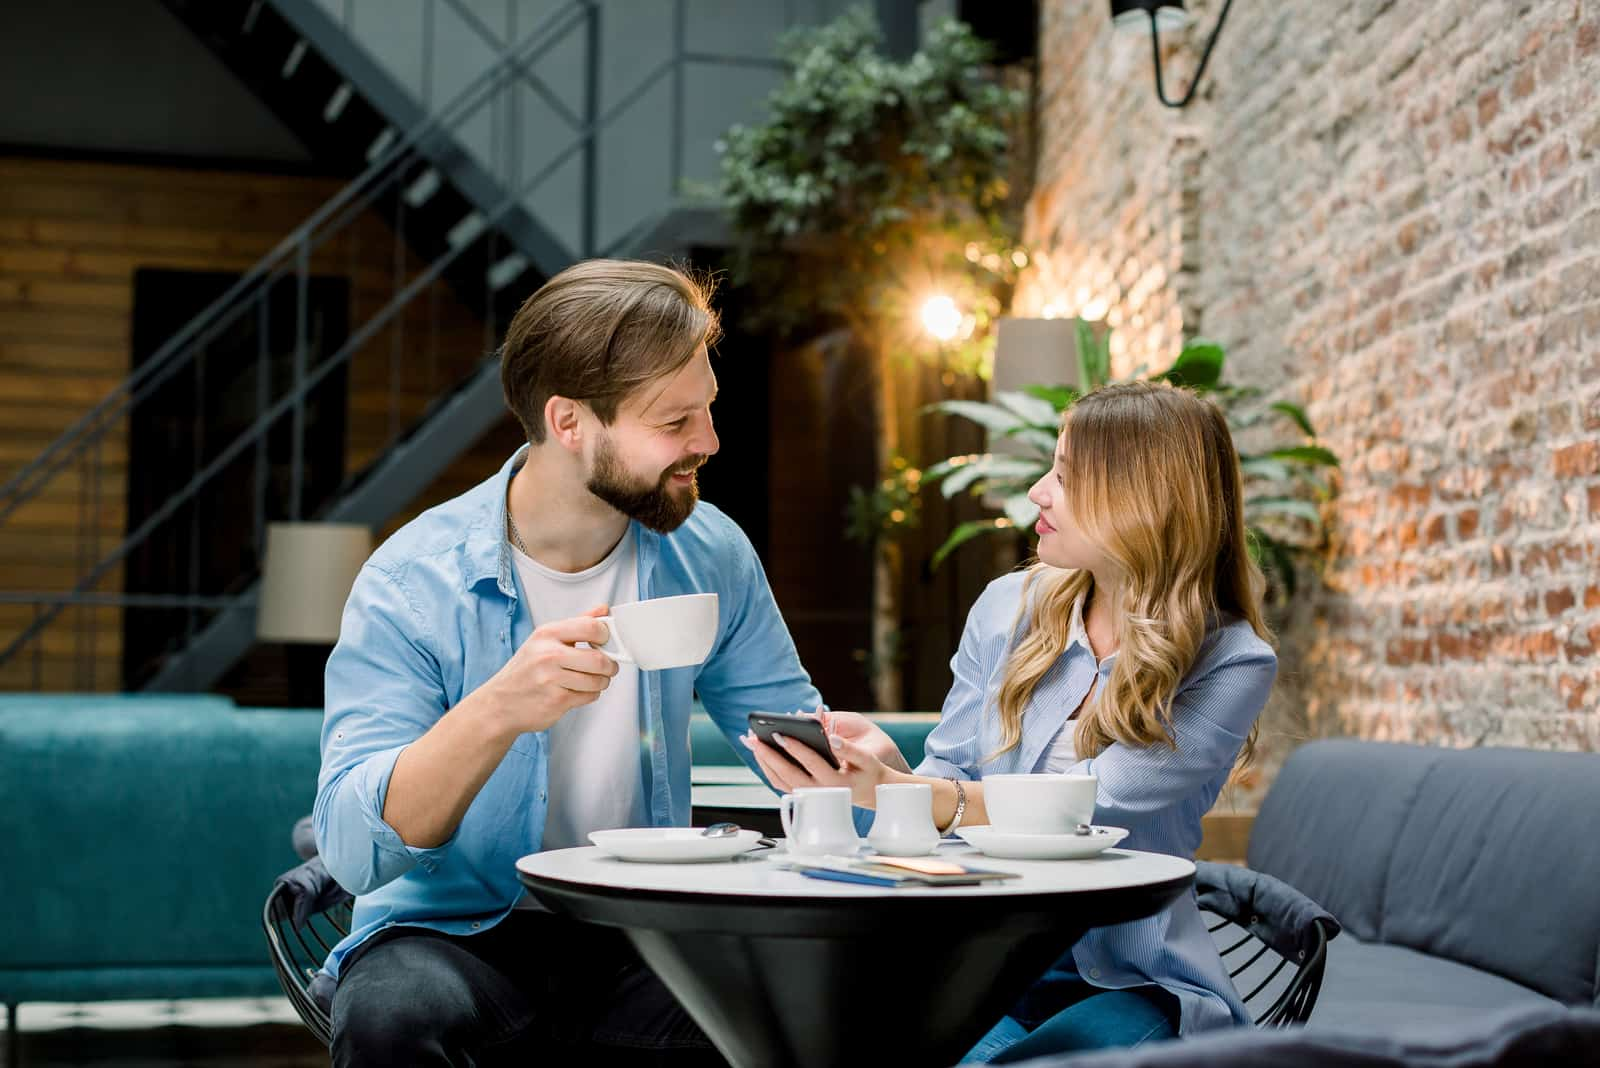 a smiling man and woman sitting in a cafe